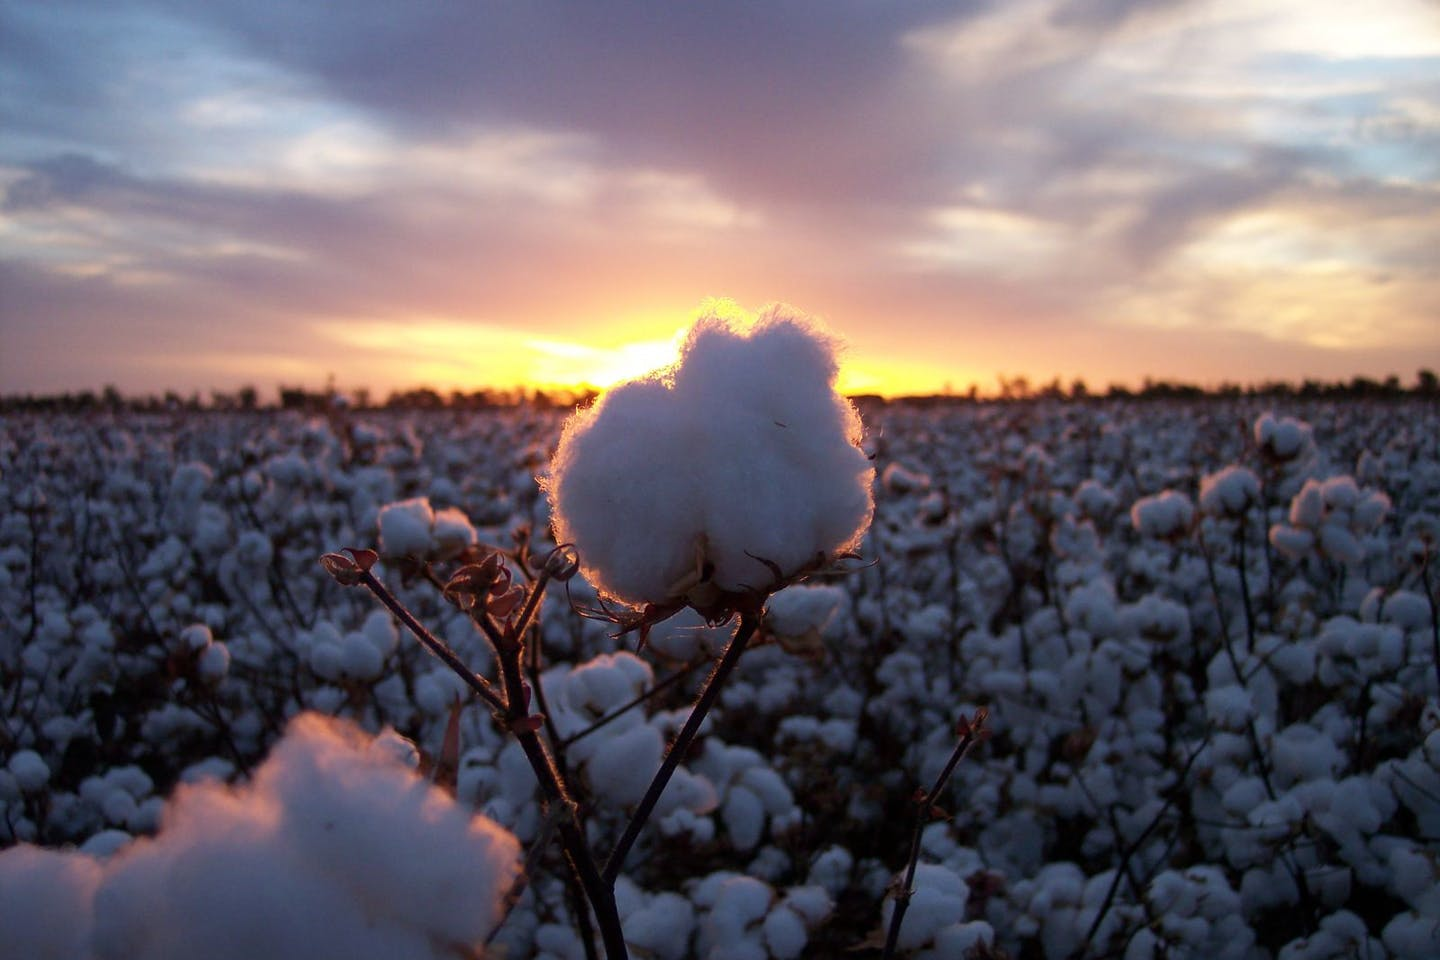 Cotton boll in sunset field